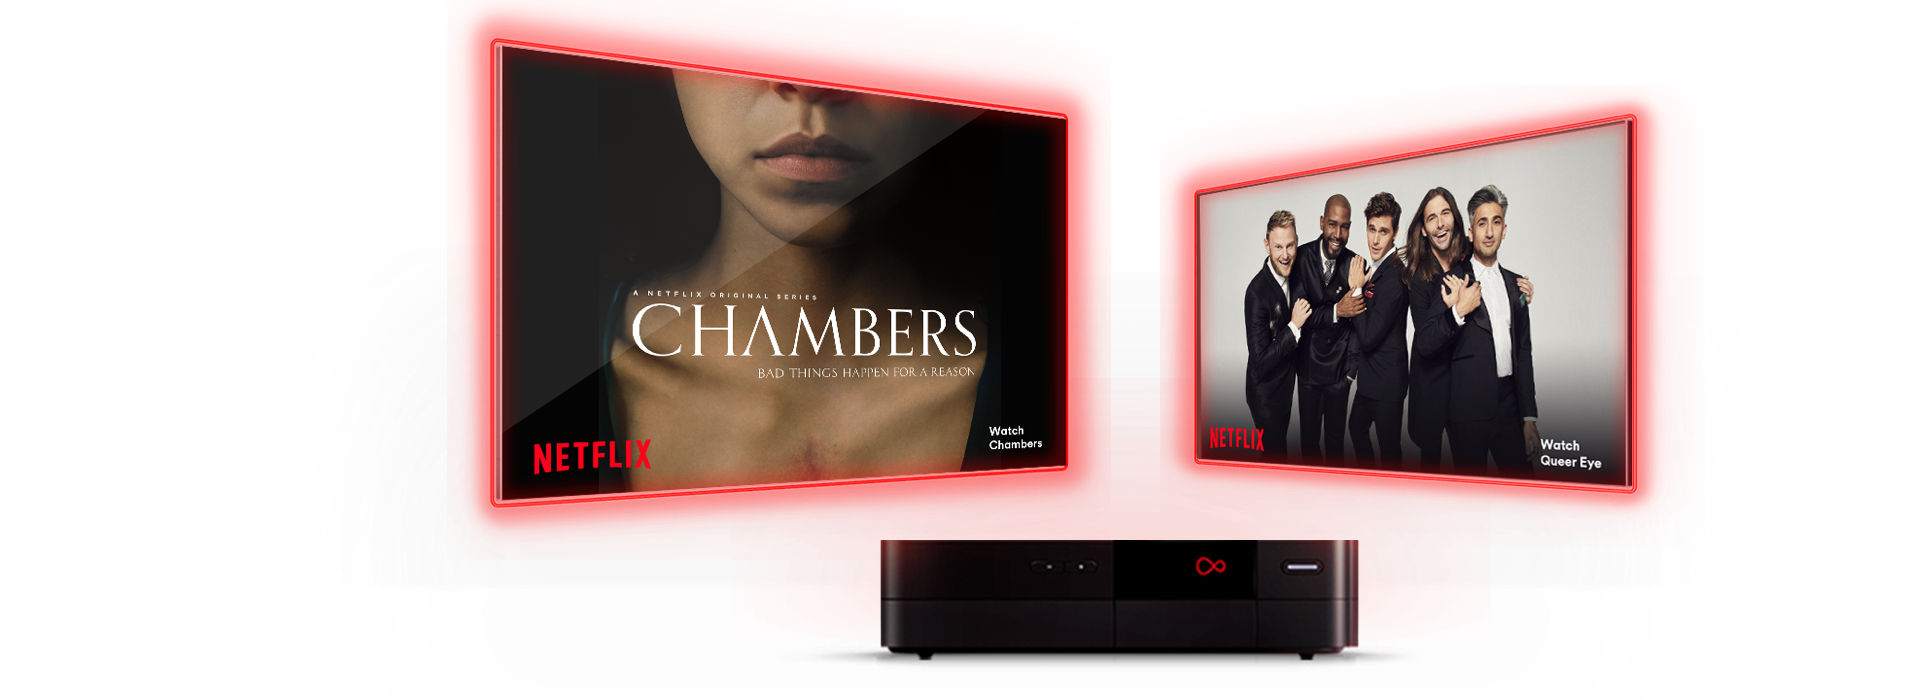 Watch Netflix on Virgin TV | Virgin Media